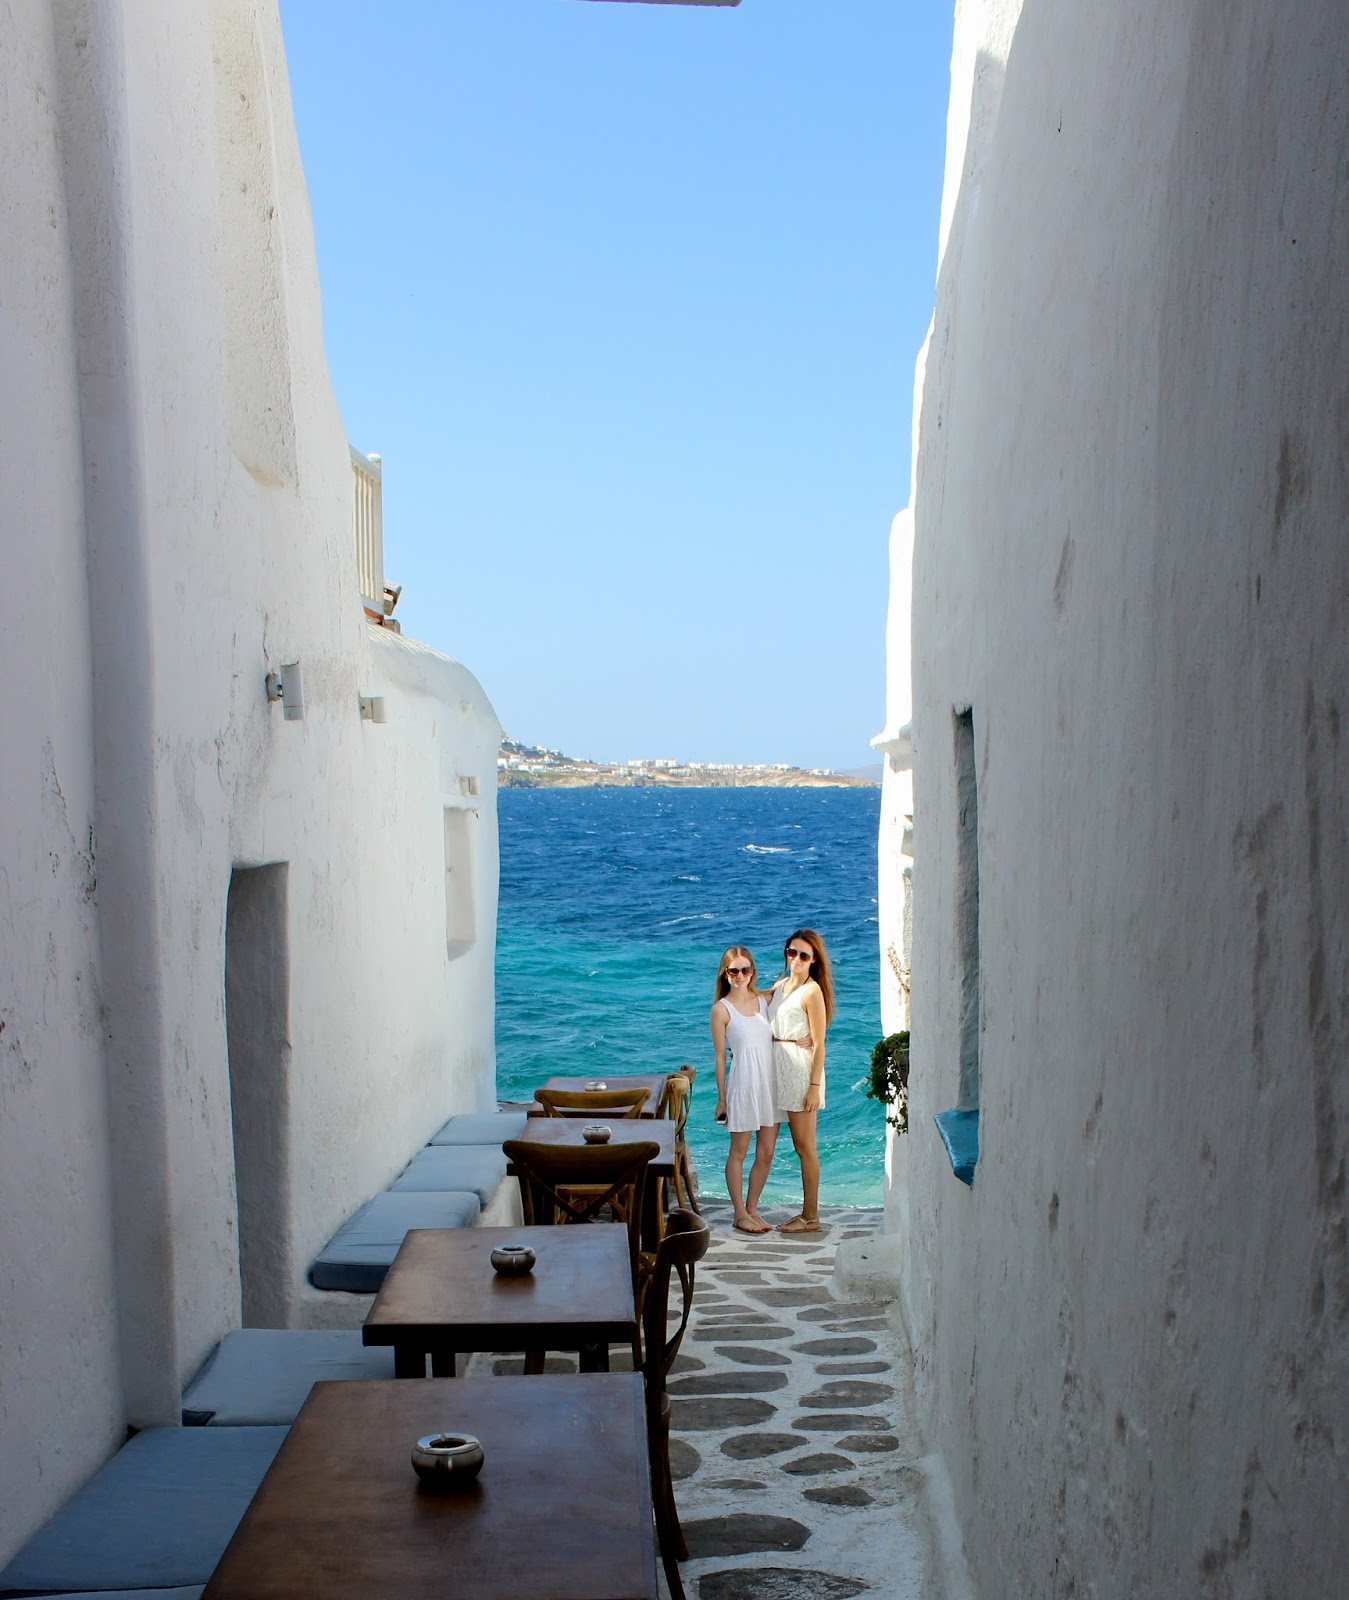 Girls with mykonos beauty surroundings, white blue and cobbled streets.